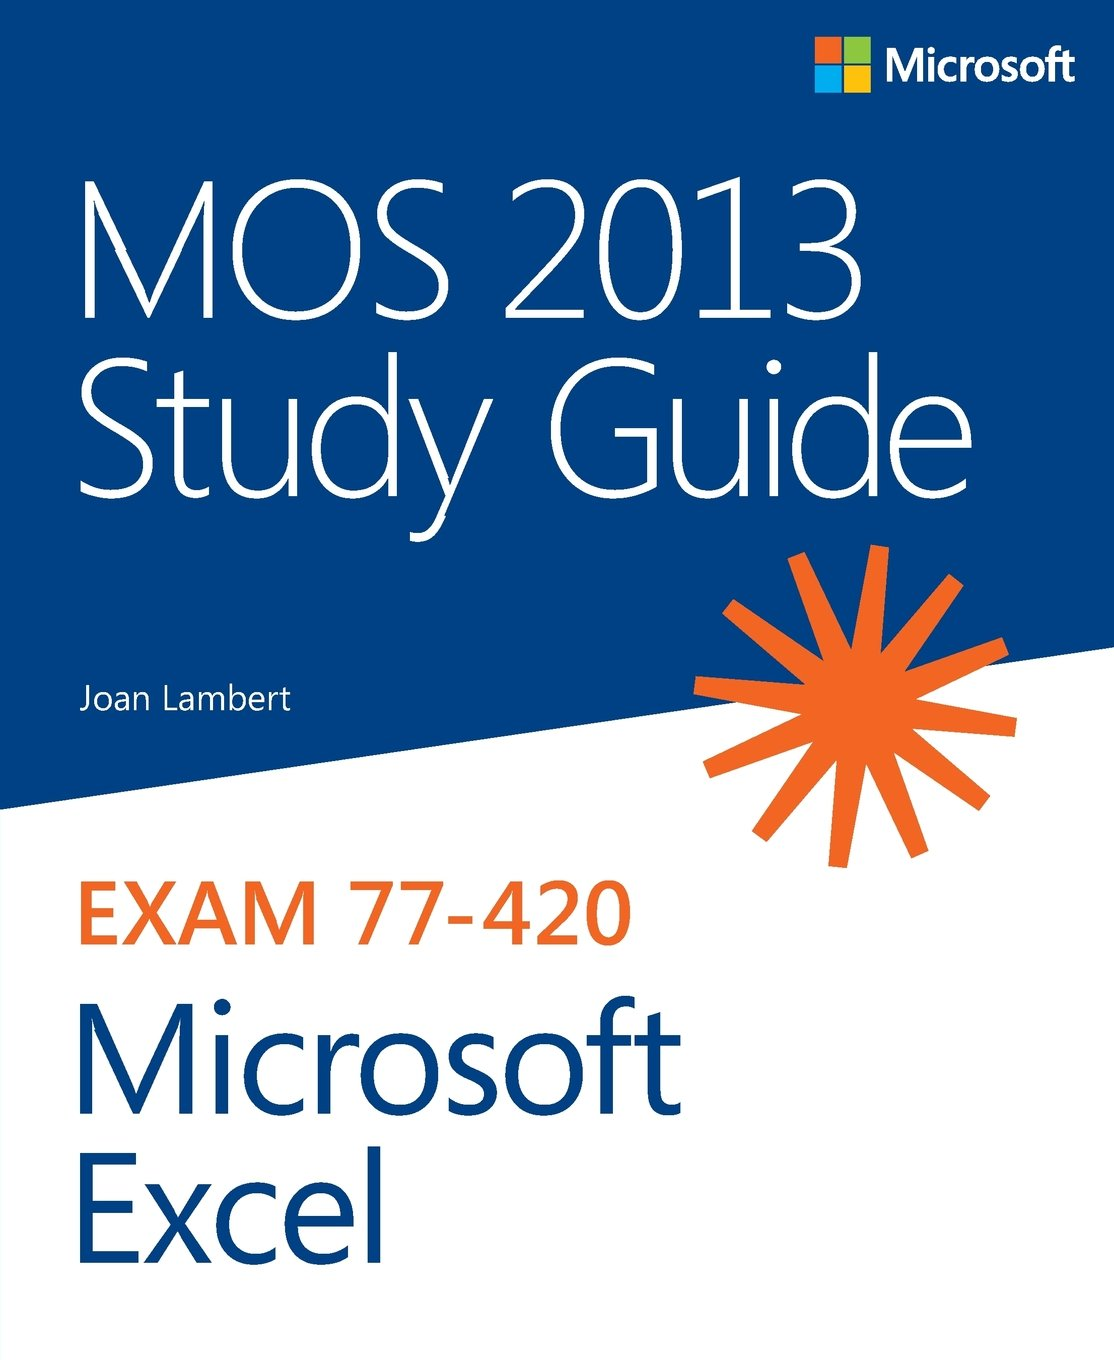 mos 2013 study guide for microsoft excel mos study guide amazon rh amazon co uk MS Excel Study Material MS Excel Study Material